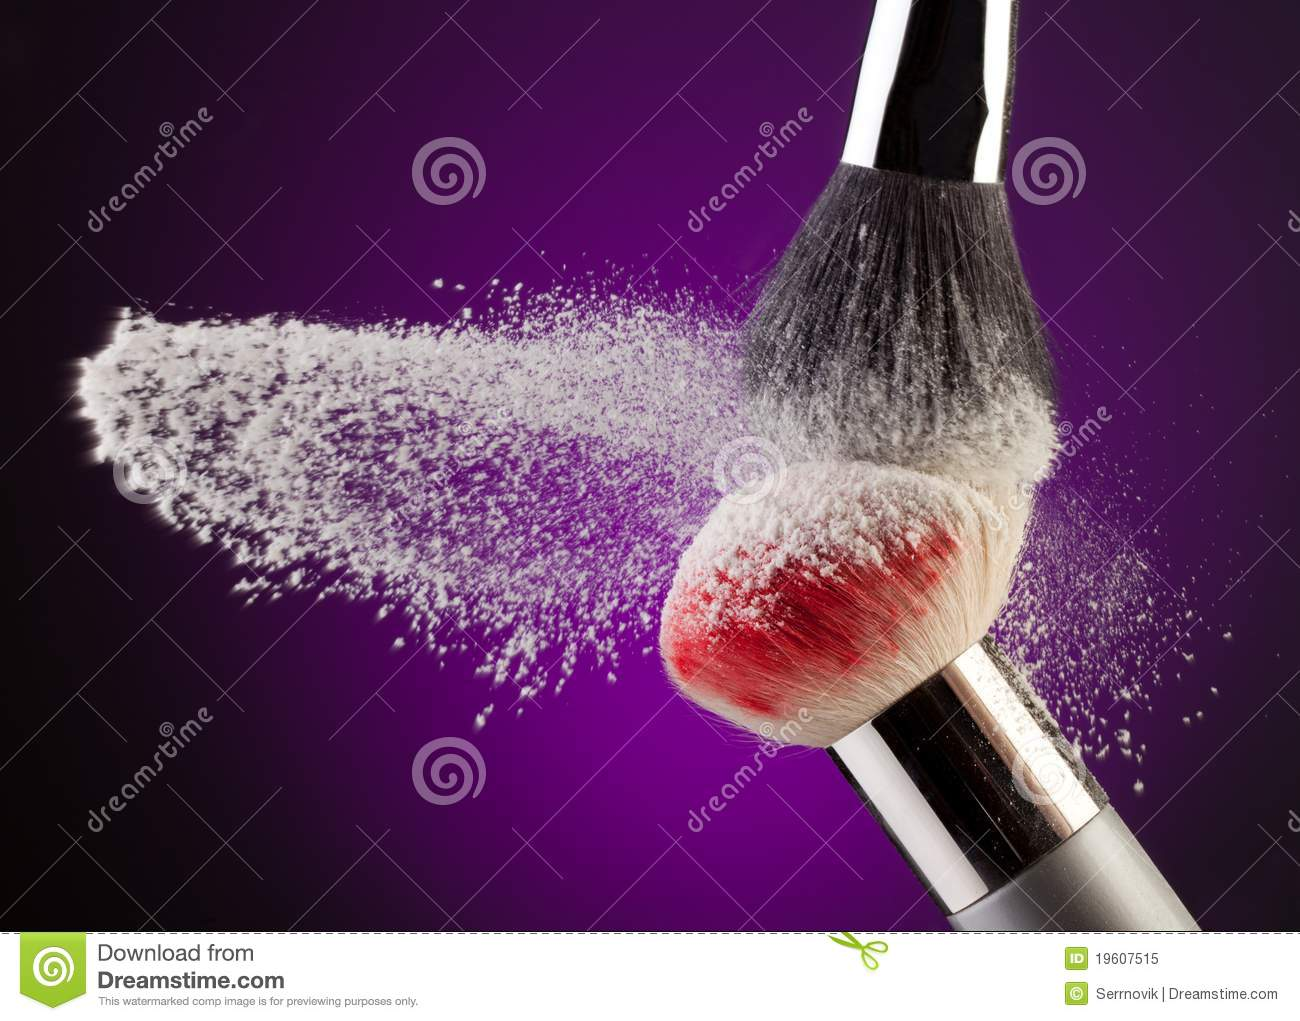 Makeup powder and brushes